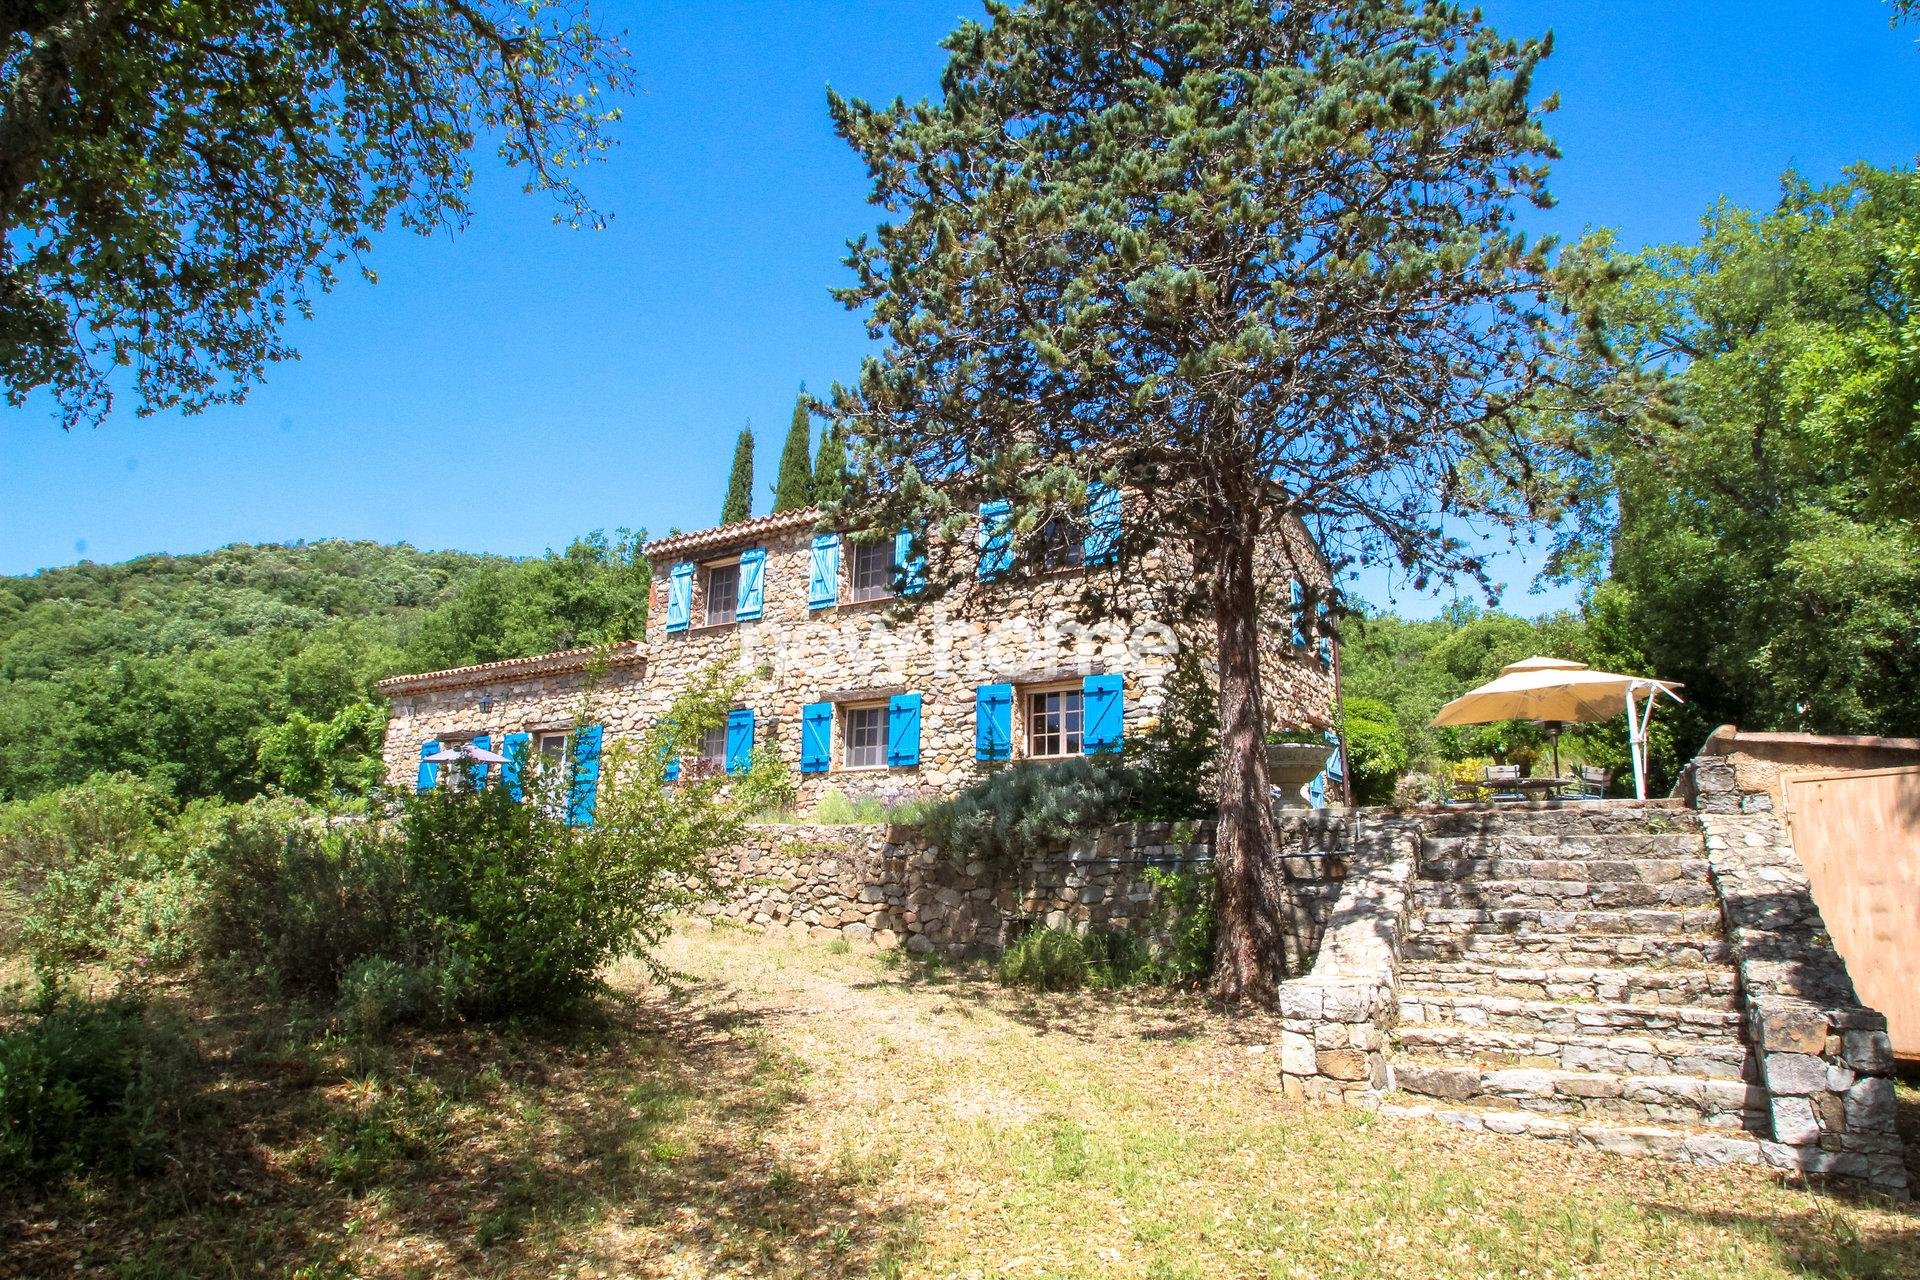 Authentic Bergerie with 28,5 hectares of land including a lake and a rivier